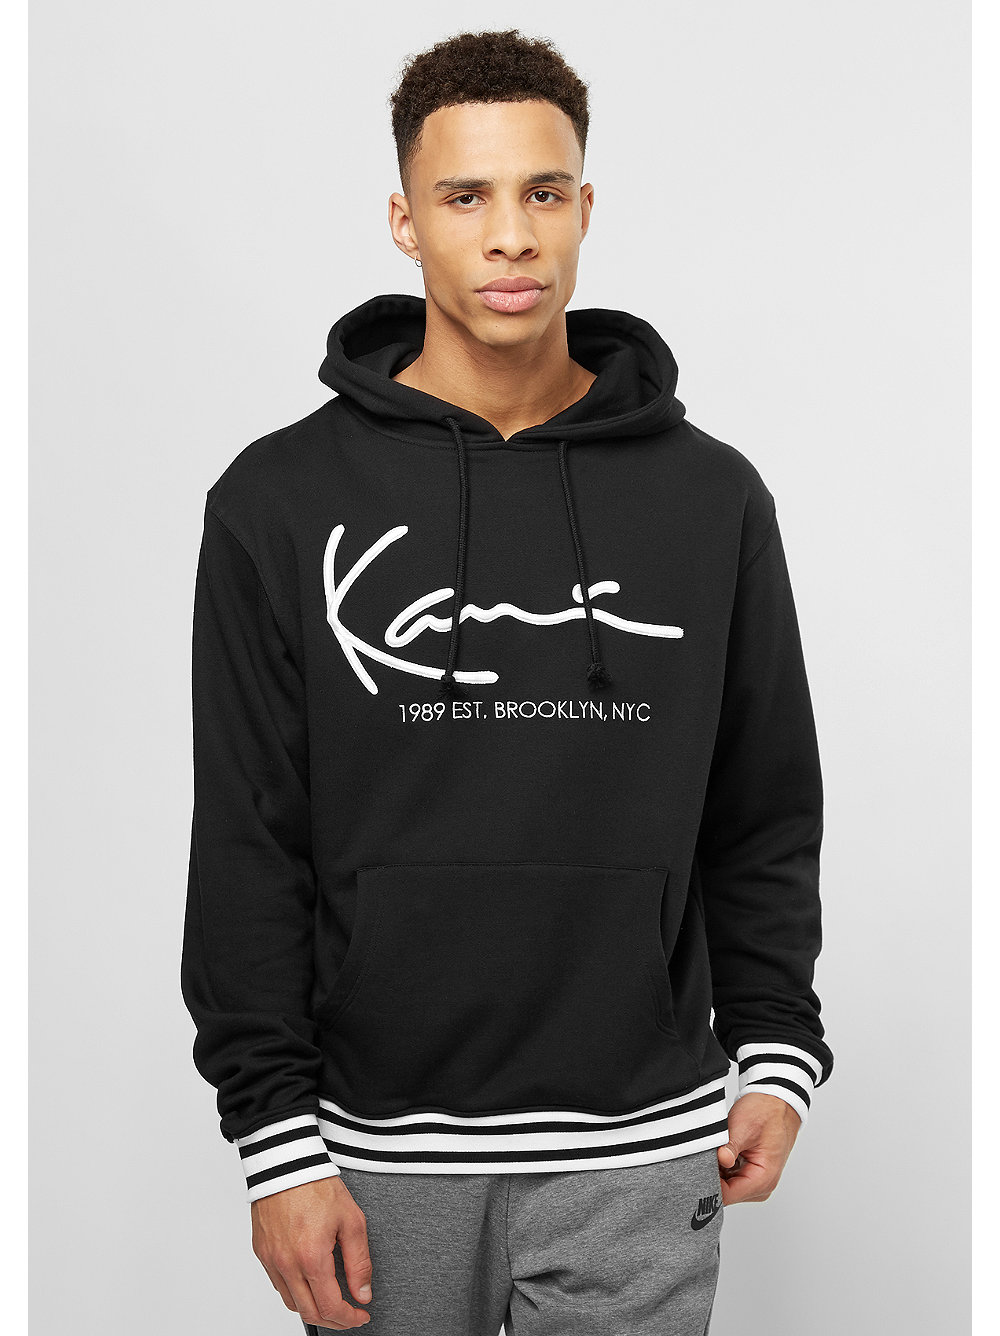 karl kani basic hooded sweatshirt black im snipes onlineshop. Black Bedroom Furniture Sets. Home Design Ideas